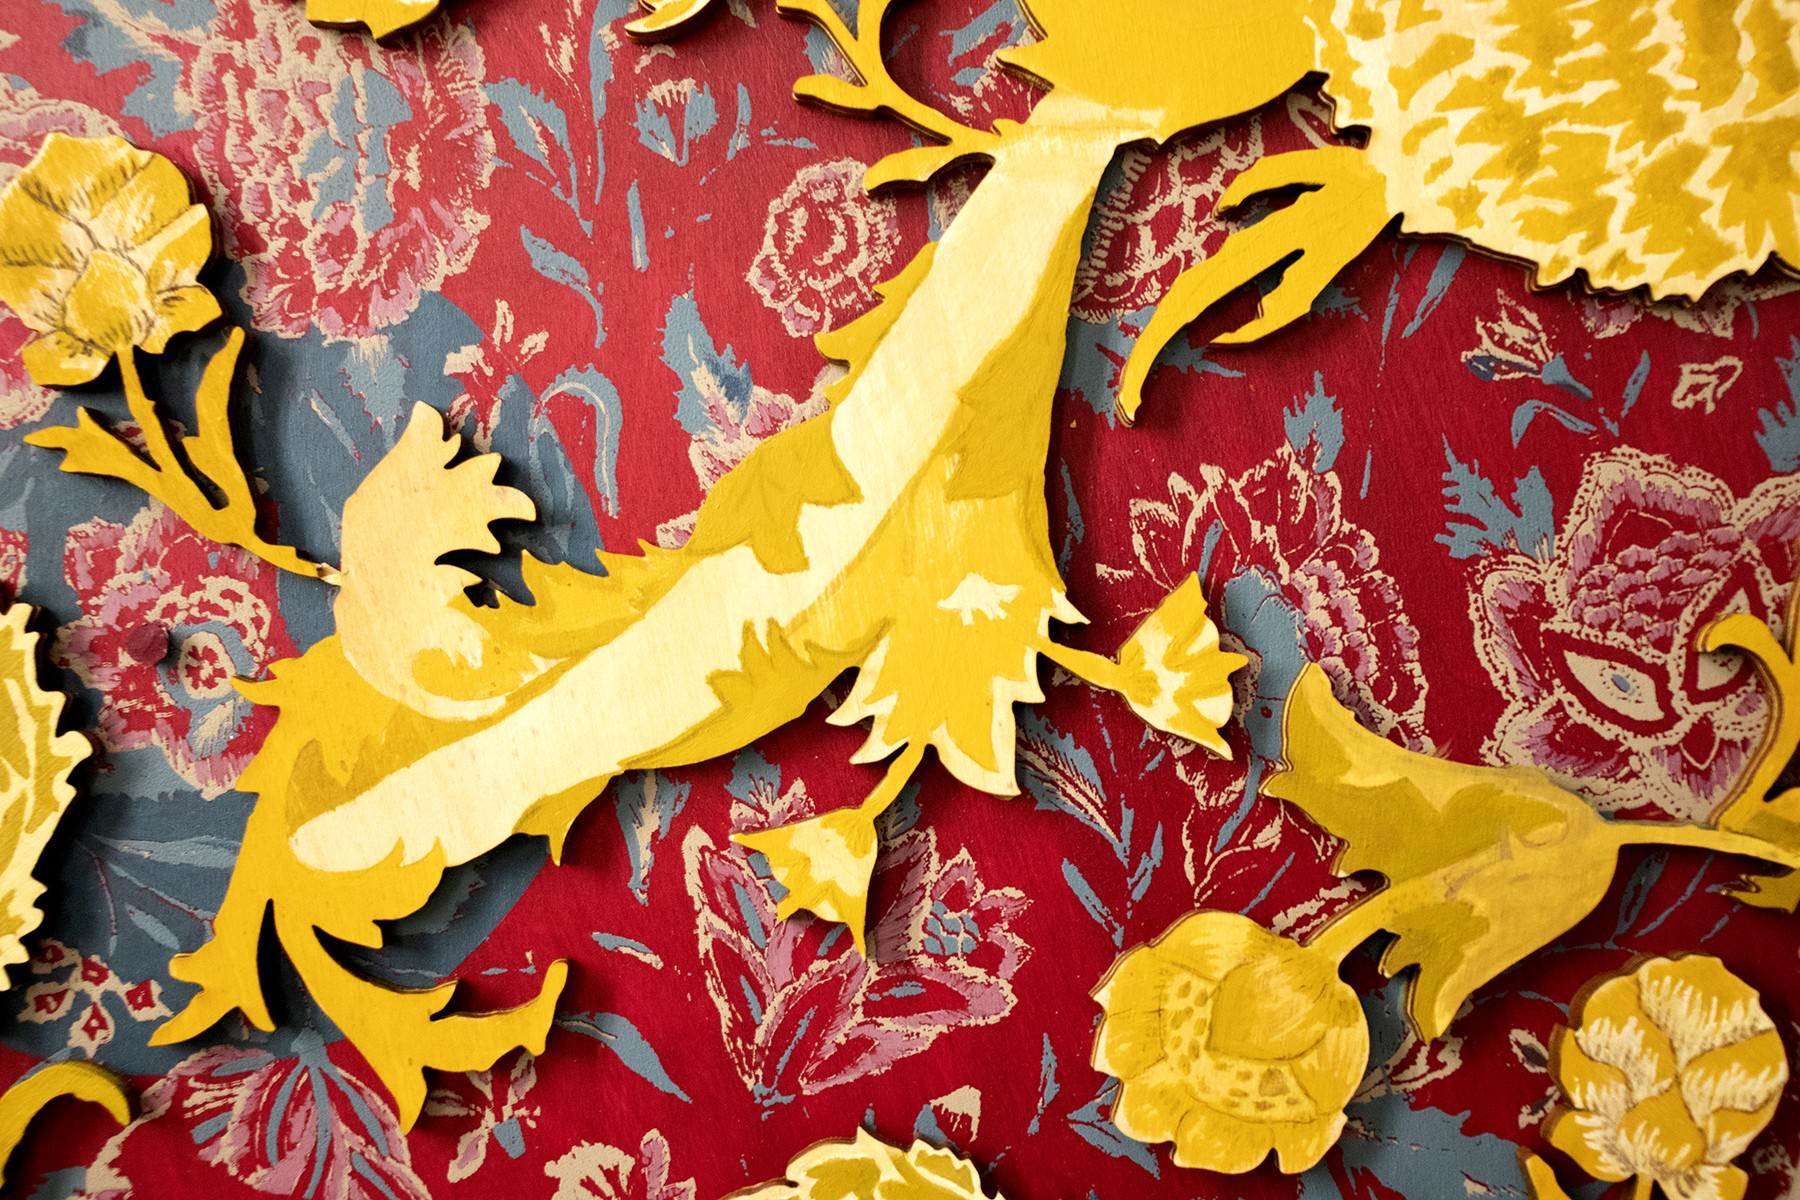 The English Aesthetic Movement? is a vibrant screen print wood consisting of two layers. The first layer portrays imagery of delicate flowers and birds while the second layer employs bold laser-cut flower motifs. While there is a distinct difference in th